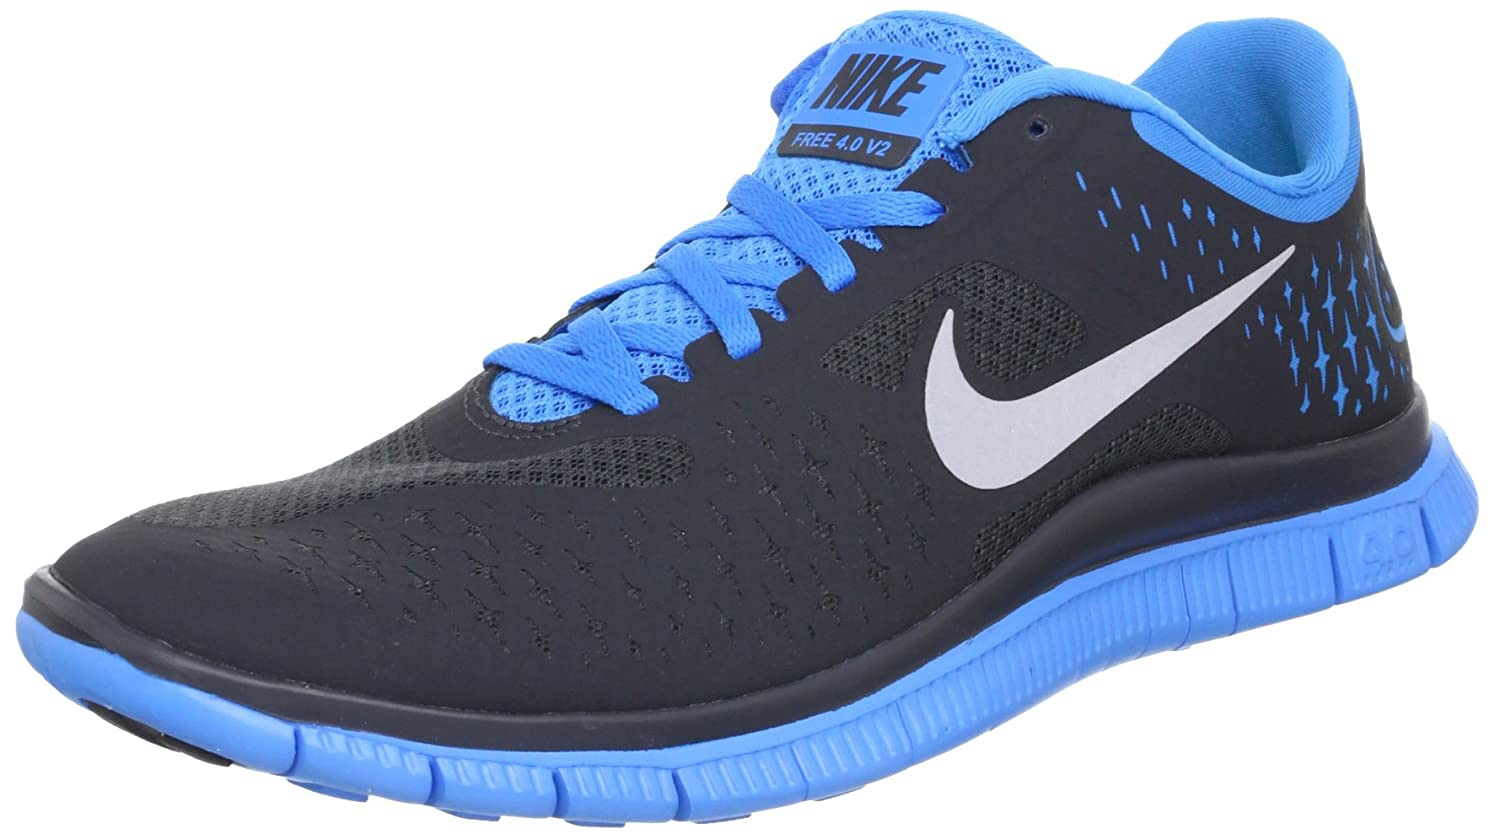 cheap for discount 285ed 1d851 Nike Free 4.0 V2 Anthracite Blue Glow Mens Lightweight Running Shoes  511472-004